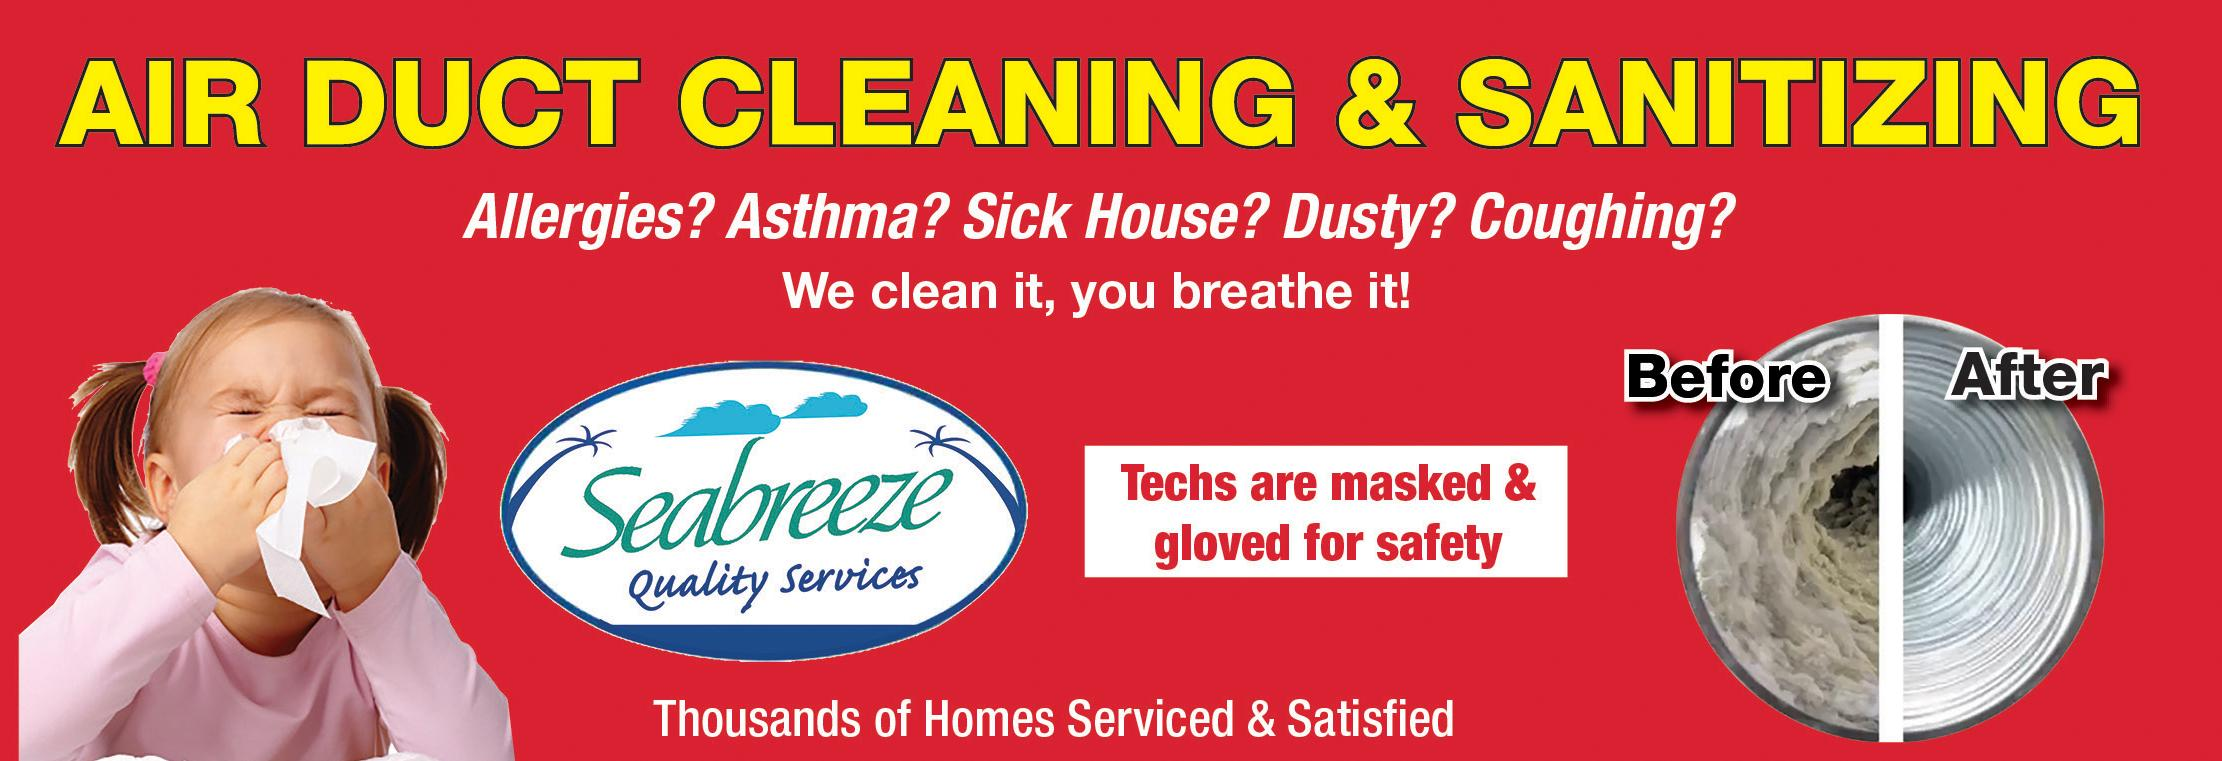 air duct cleaning coupon services Orlando and Space Coast FL